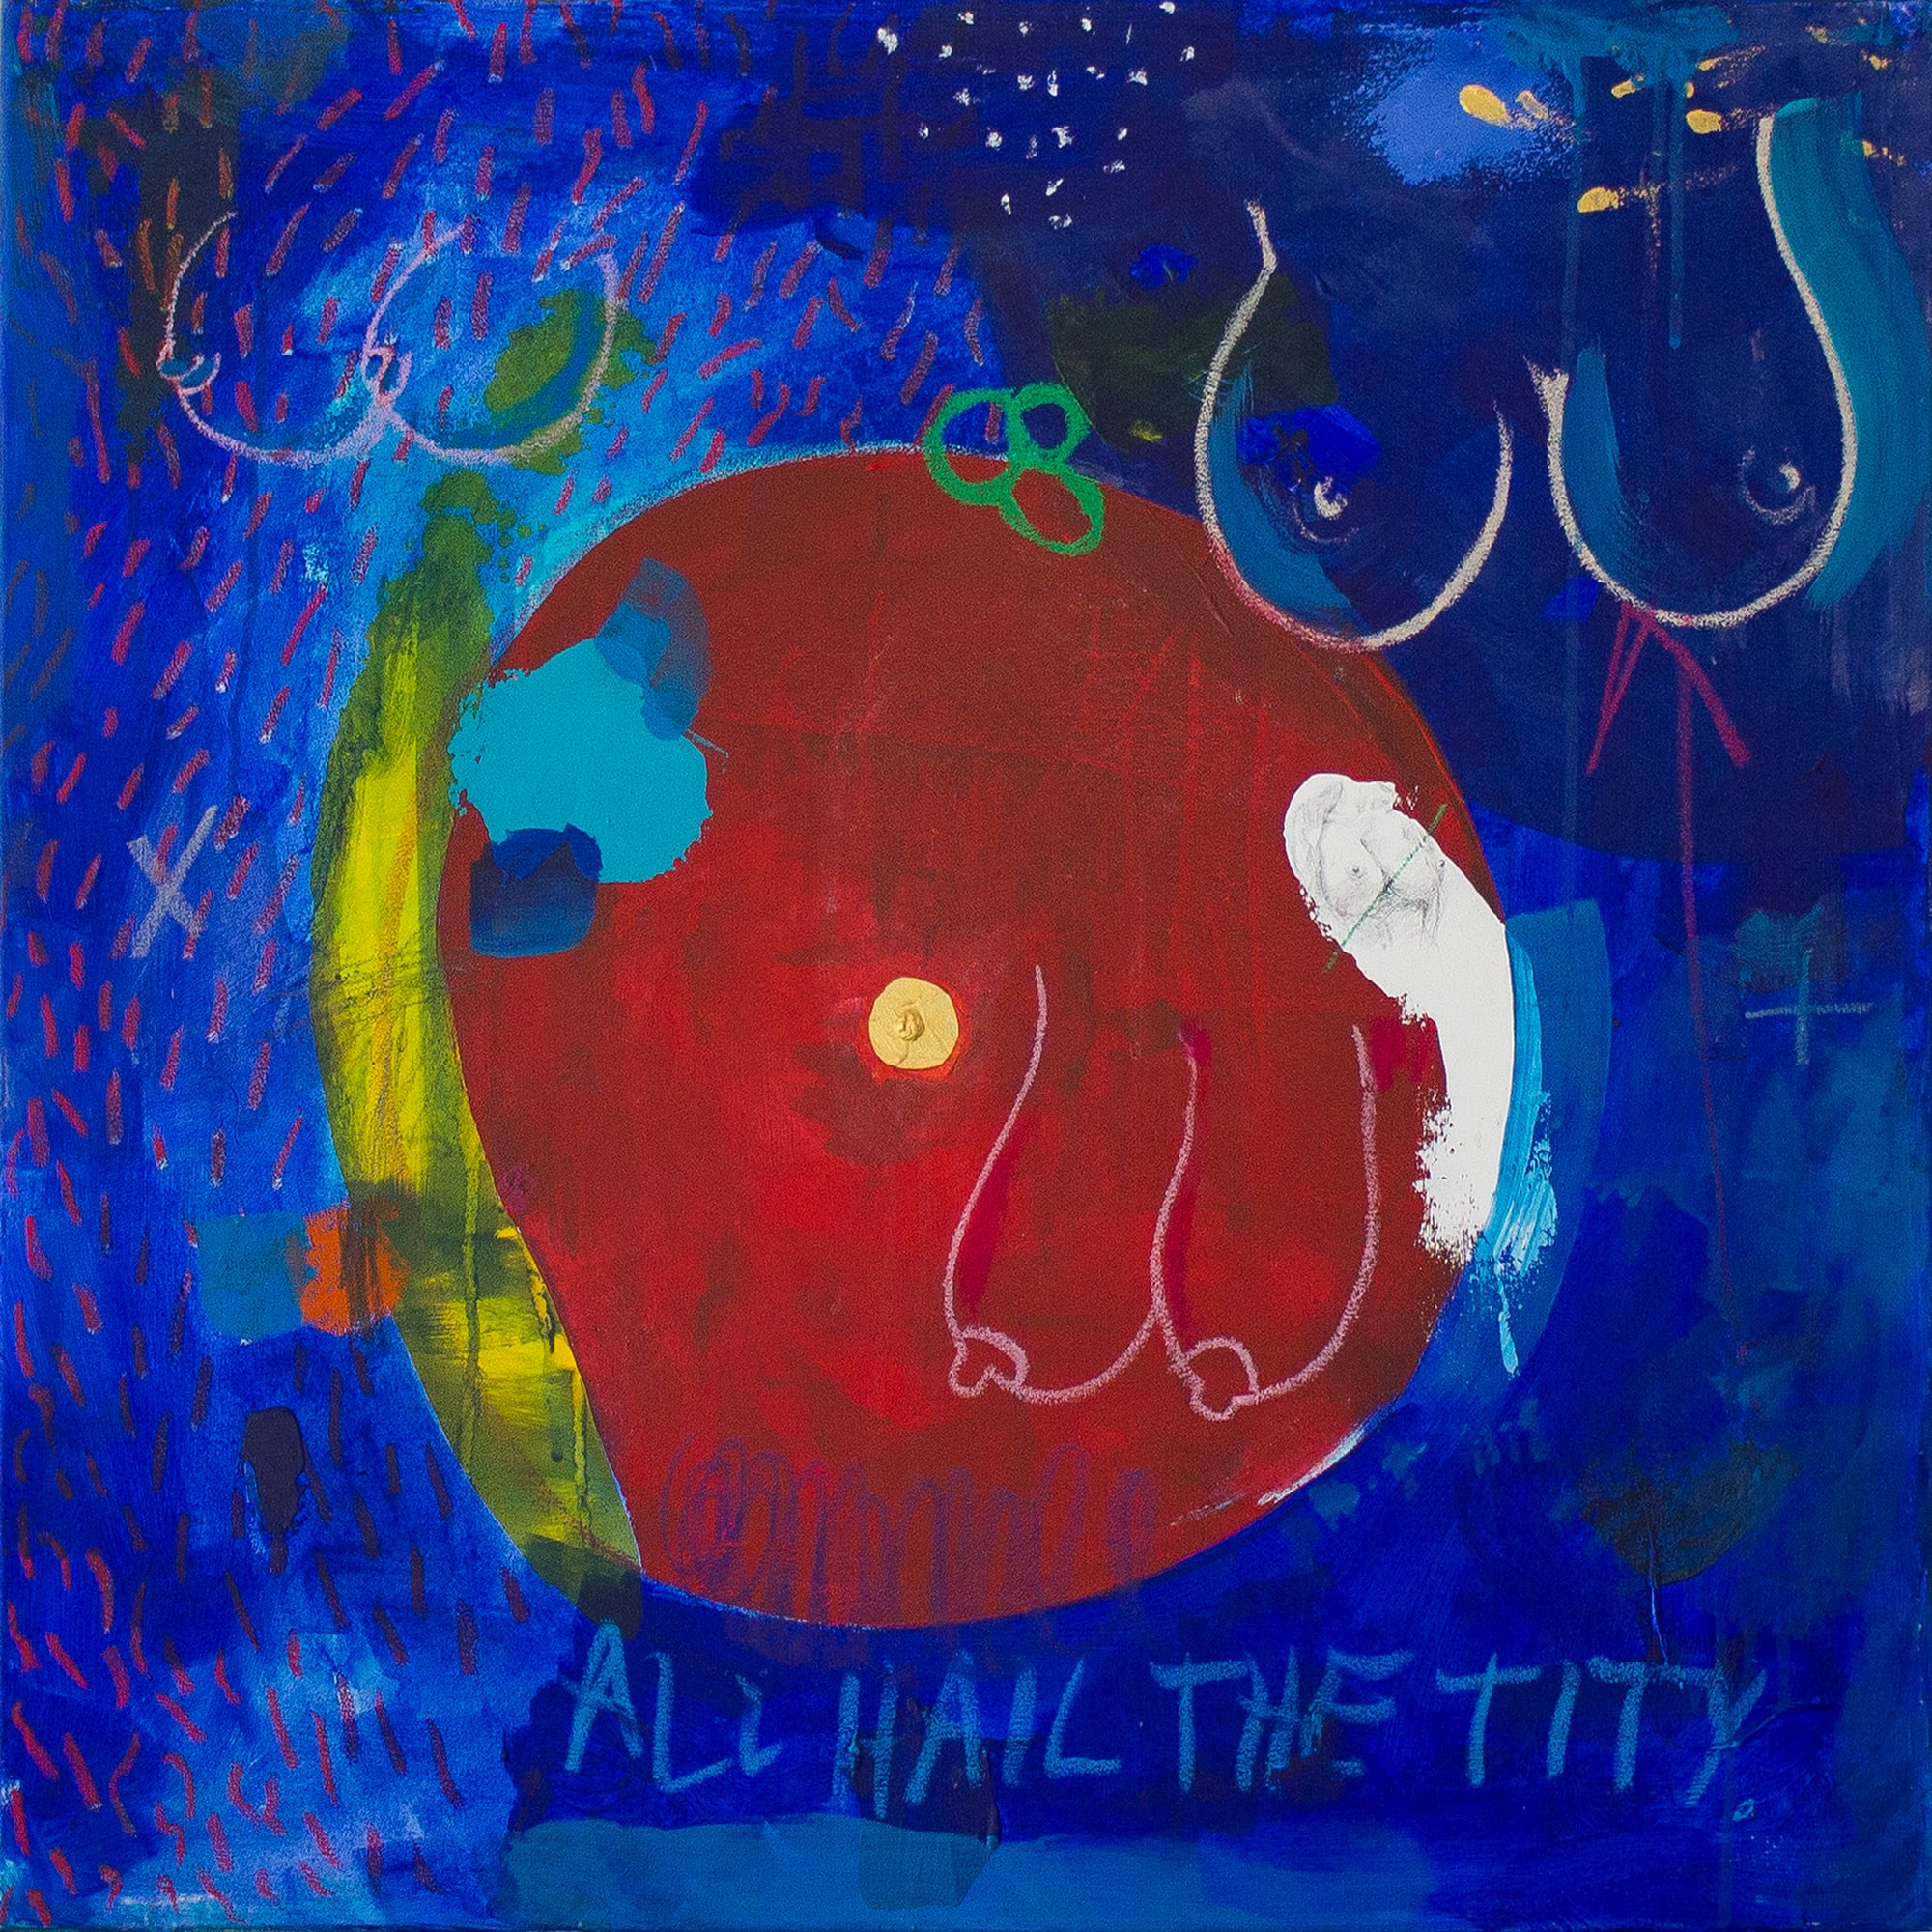 all hail the tity  Acrylic, graphite, oil pastel on canvas 73 x 73 cm